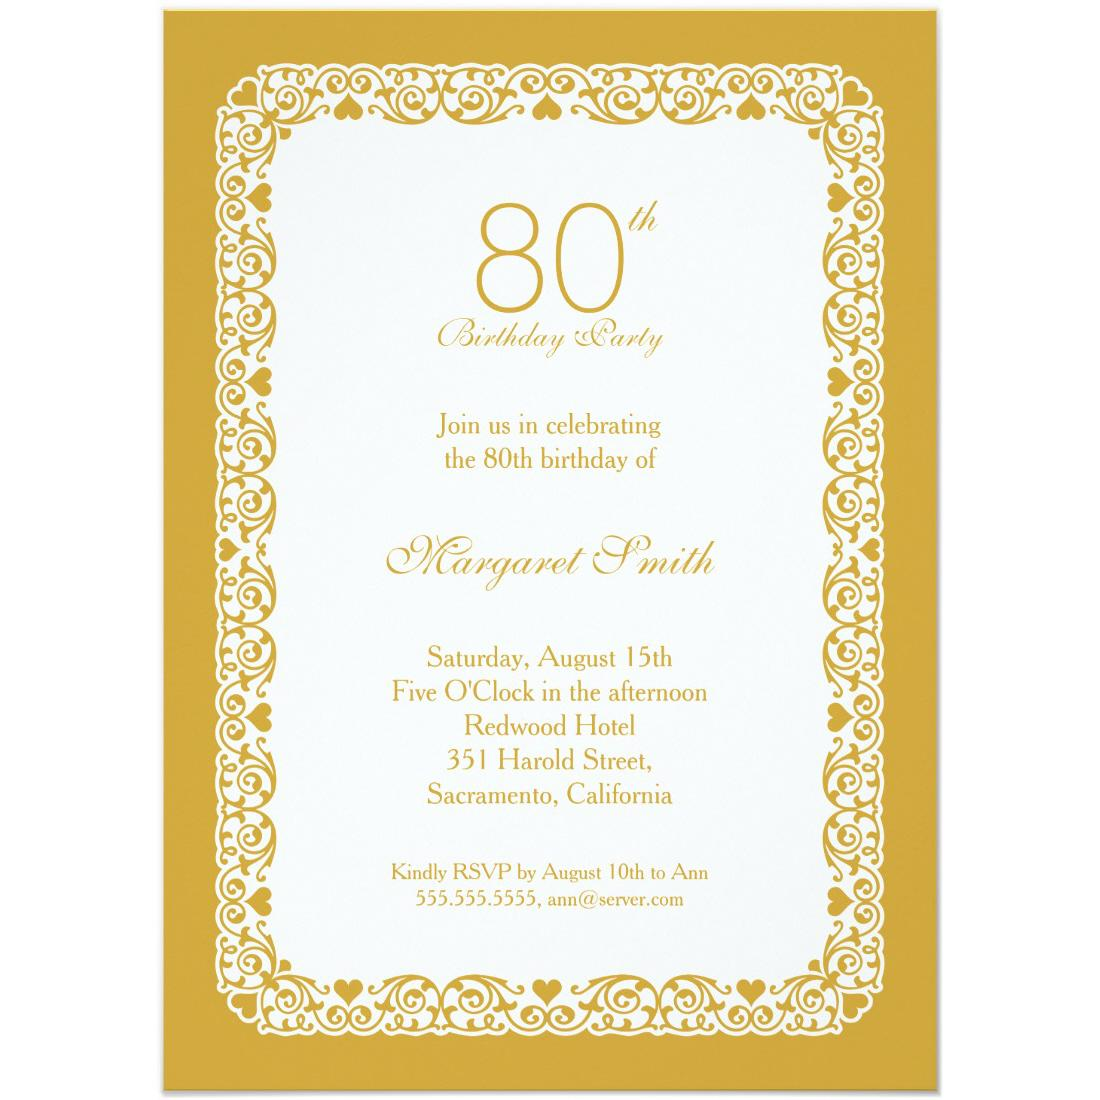 15+ Sample 80th birthday invitations Templates Ideas – Free Sample ...